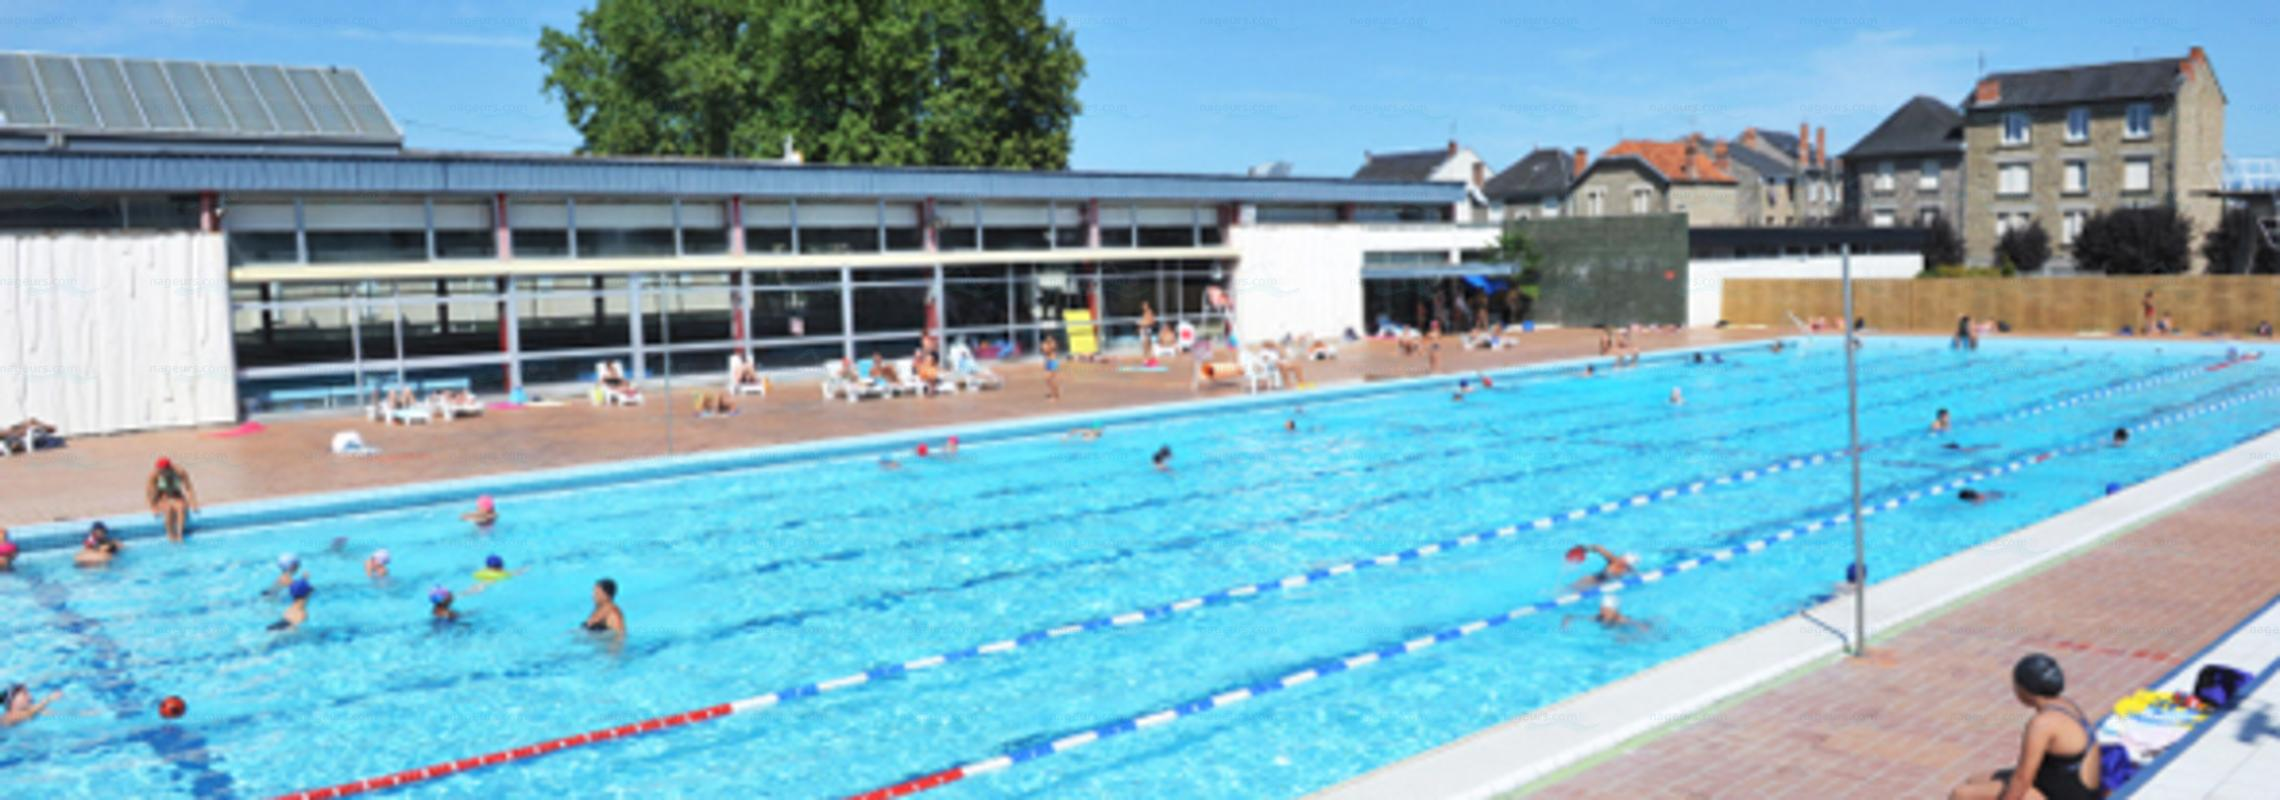 Pin piscine municipale de bourg peage on pinterest for Piscine diabolo a bourg de peage